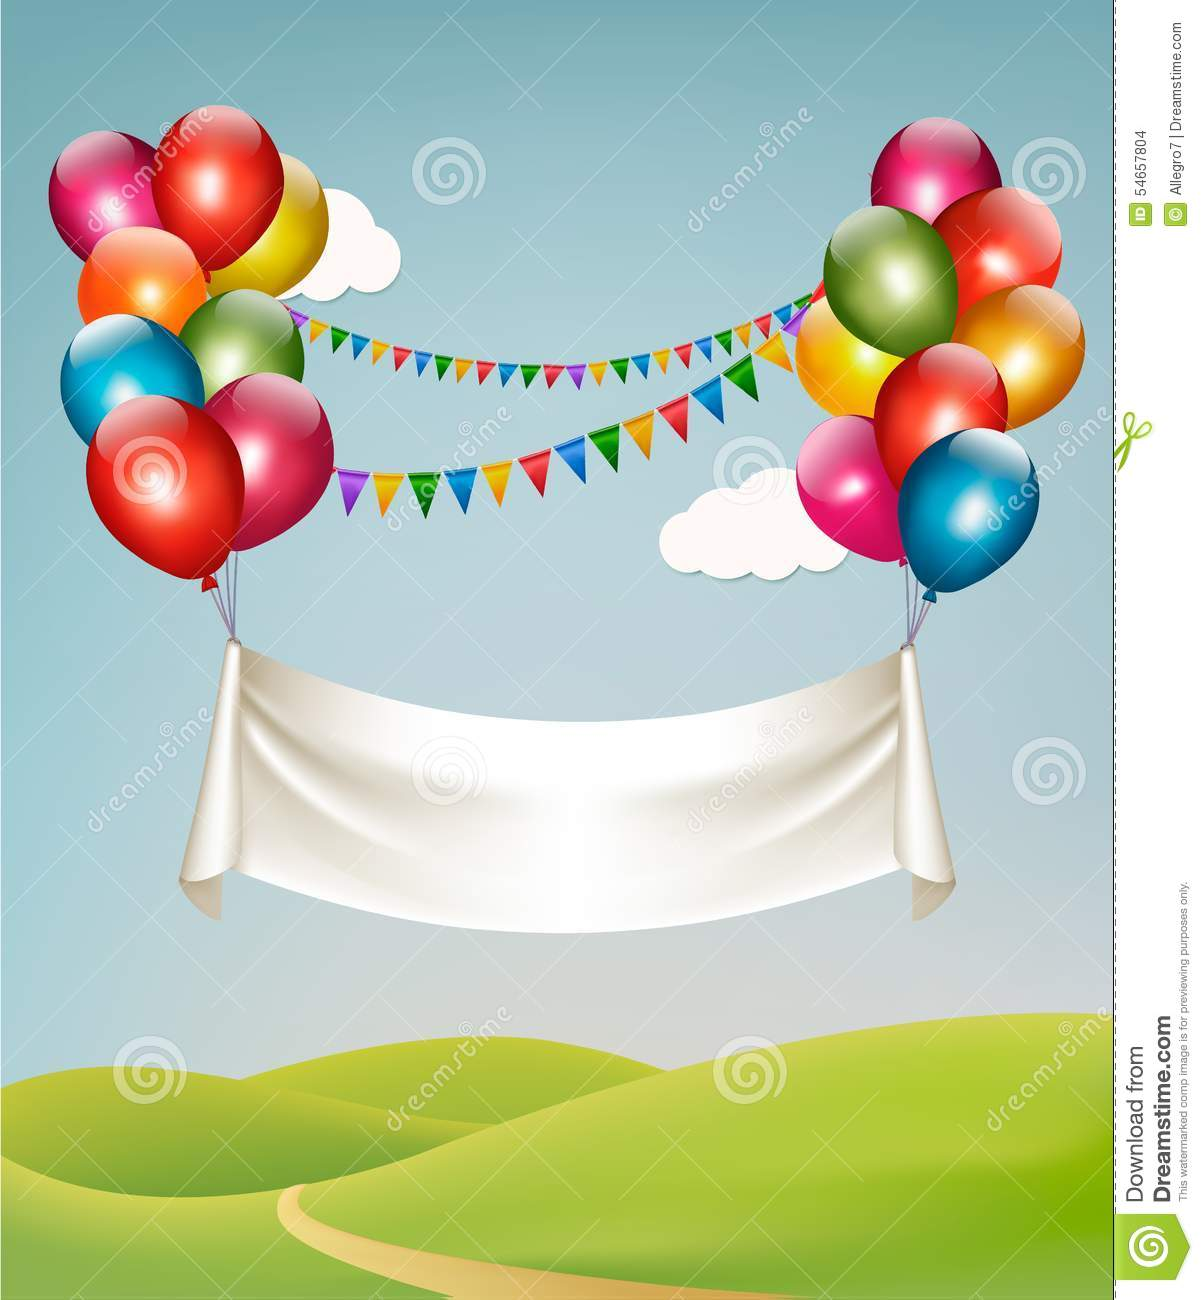 Happy Birthday Banner With Balloons. Stock Vector